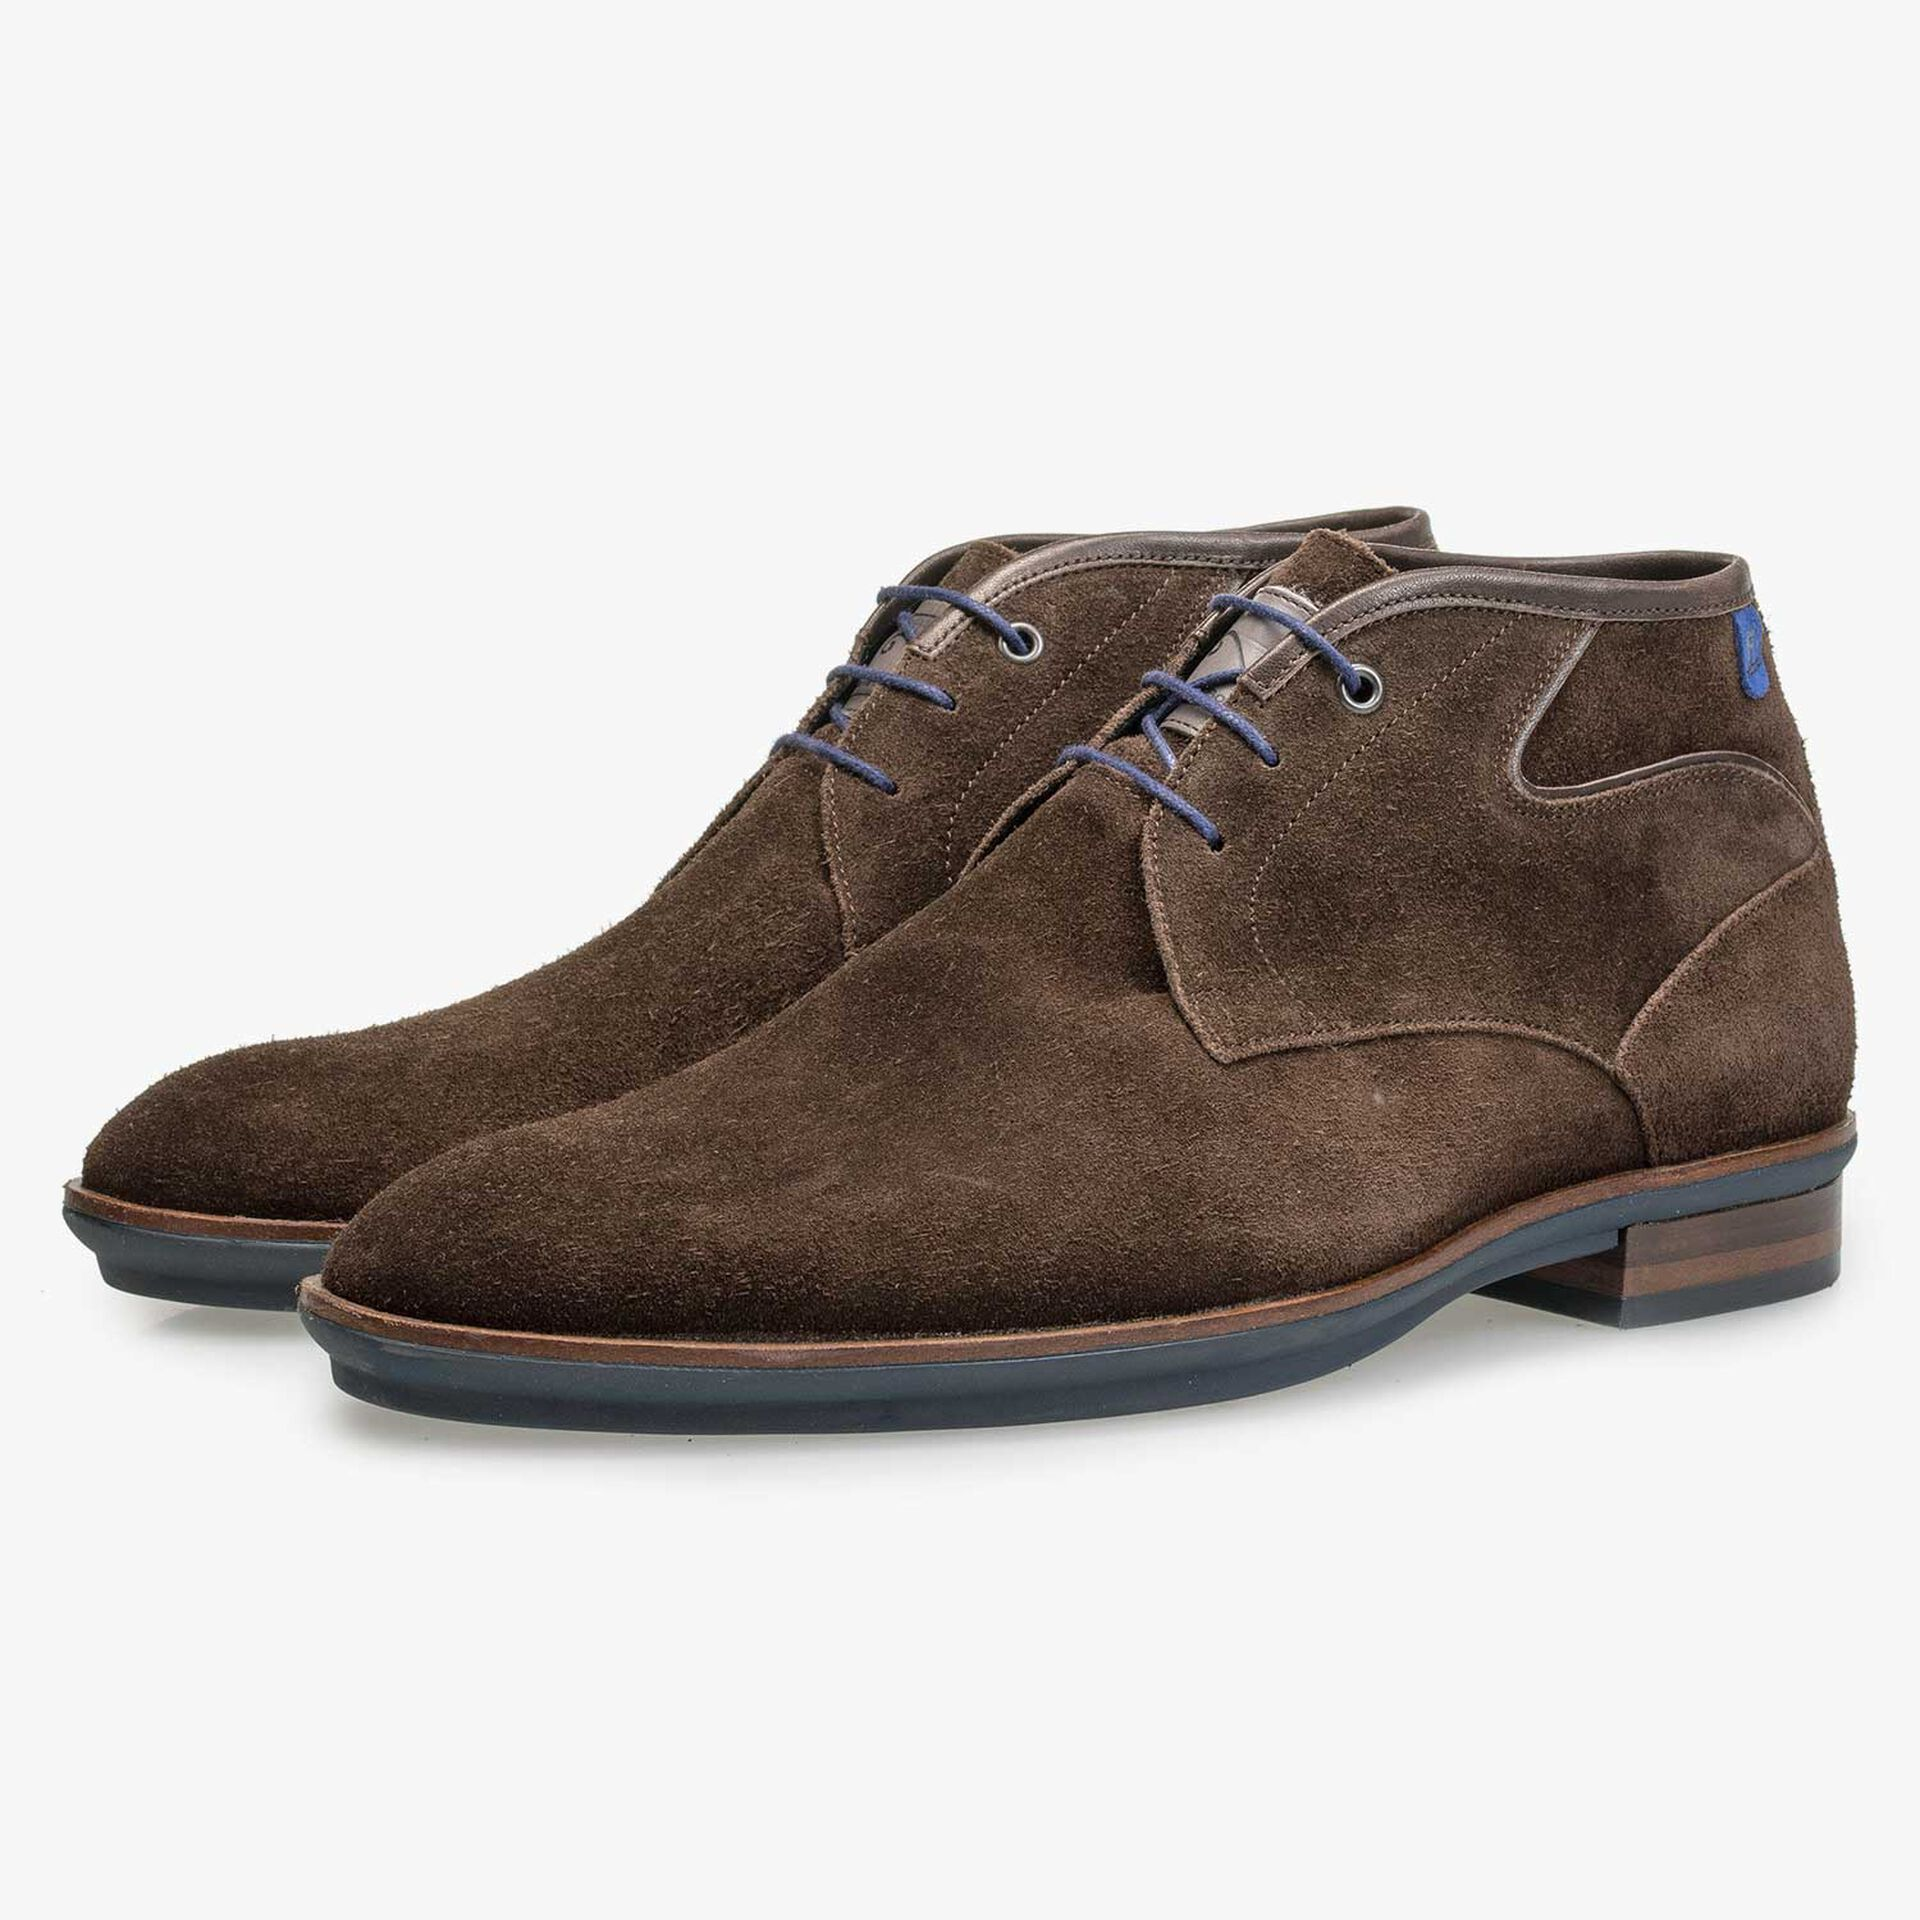 Brown suede leather lace boot with rubber sole